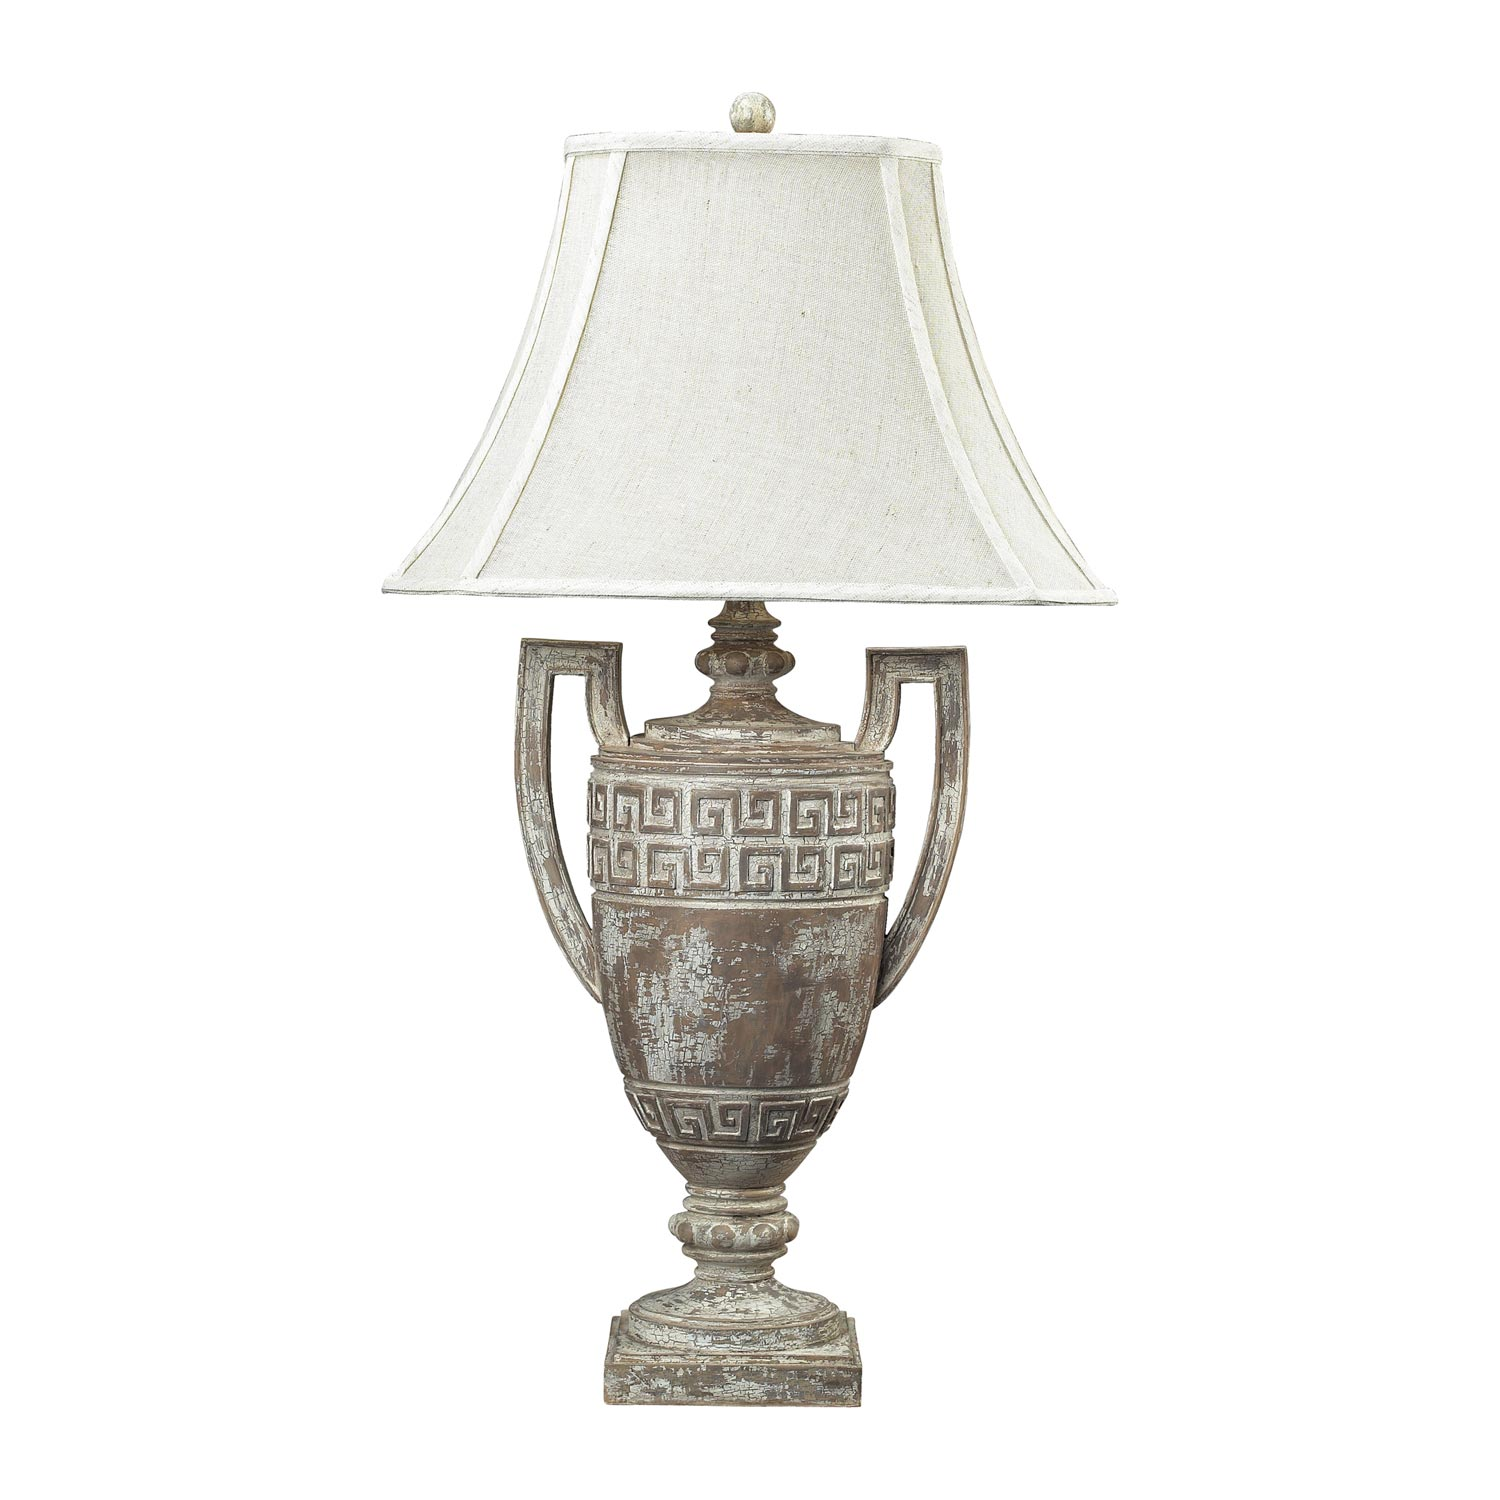 Elk Lighting Greek Key Table Lamp - Allesandria 93-9197